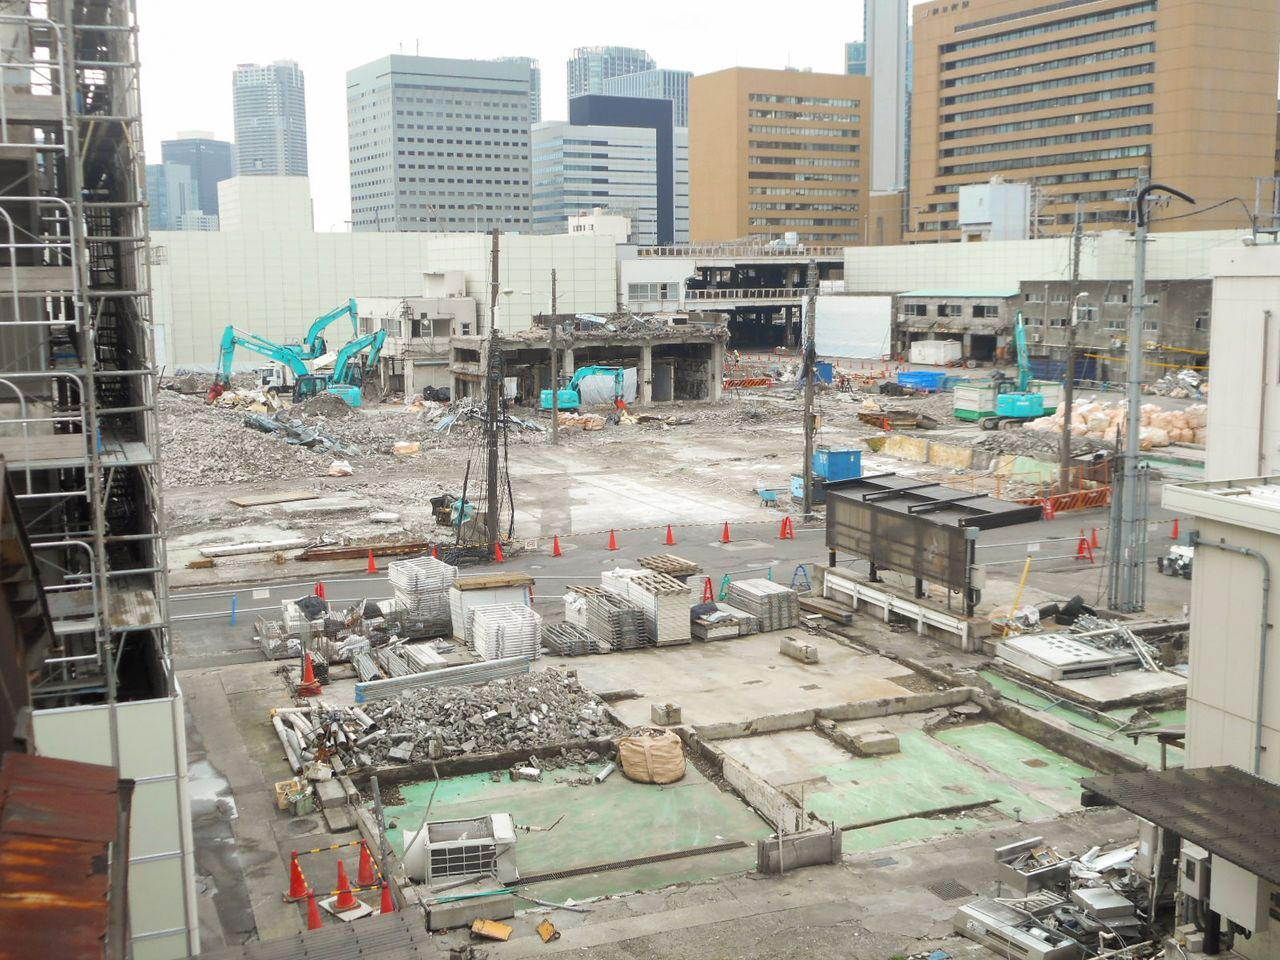 Demolition work at the site of the Tsukiji market in March 2019.